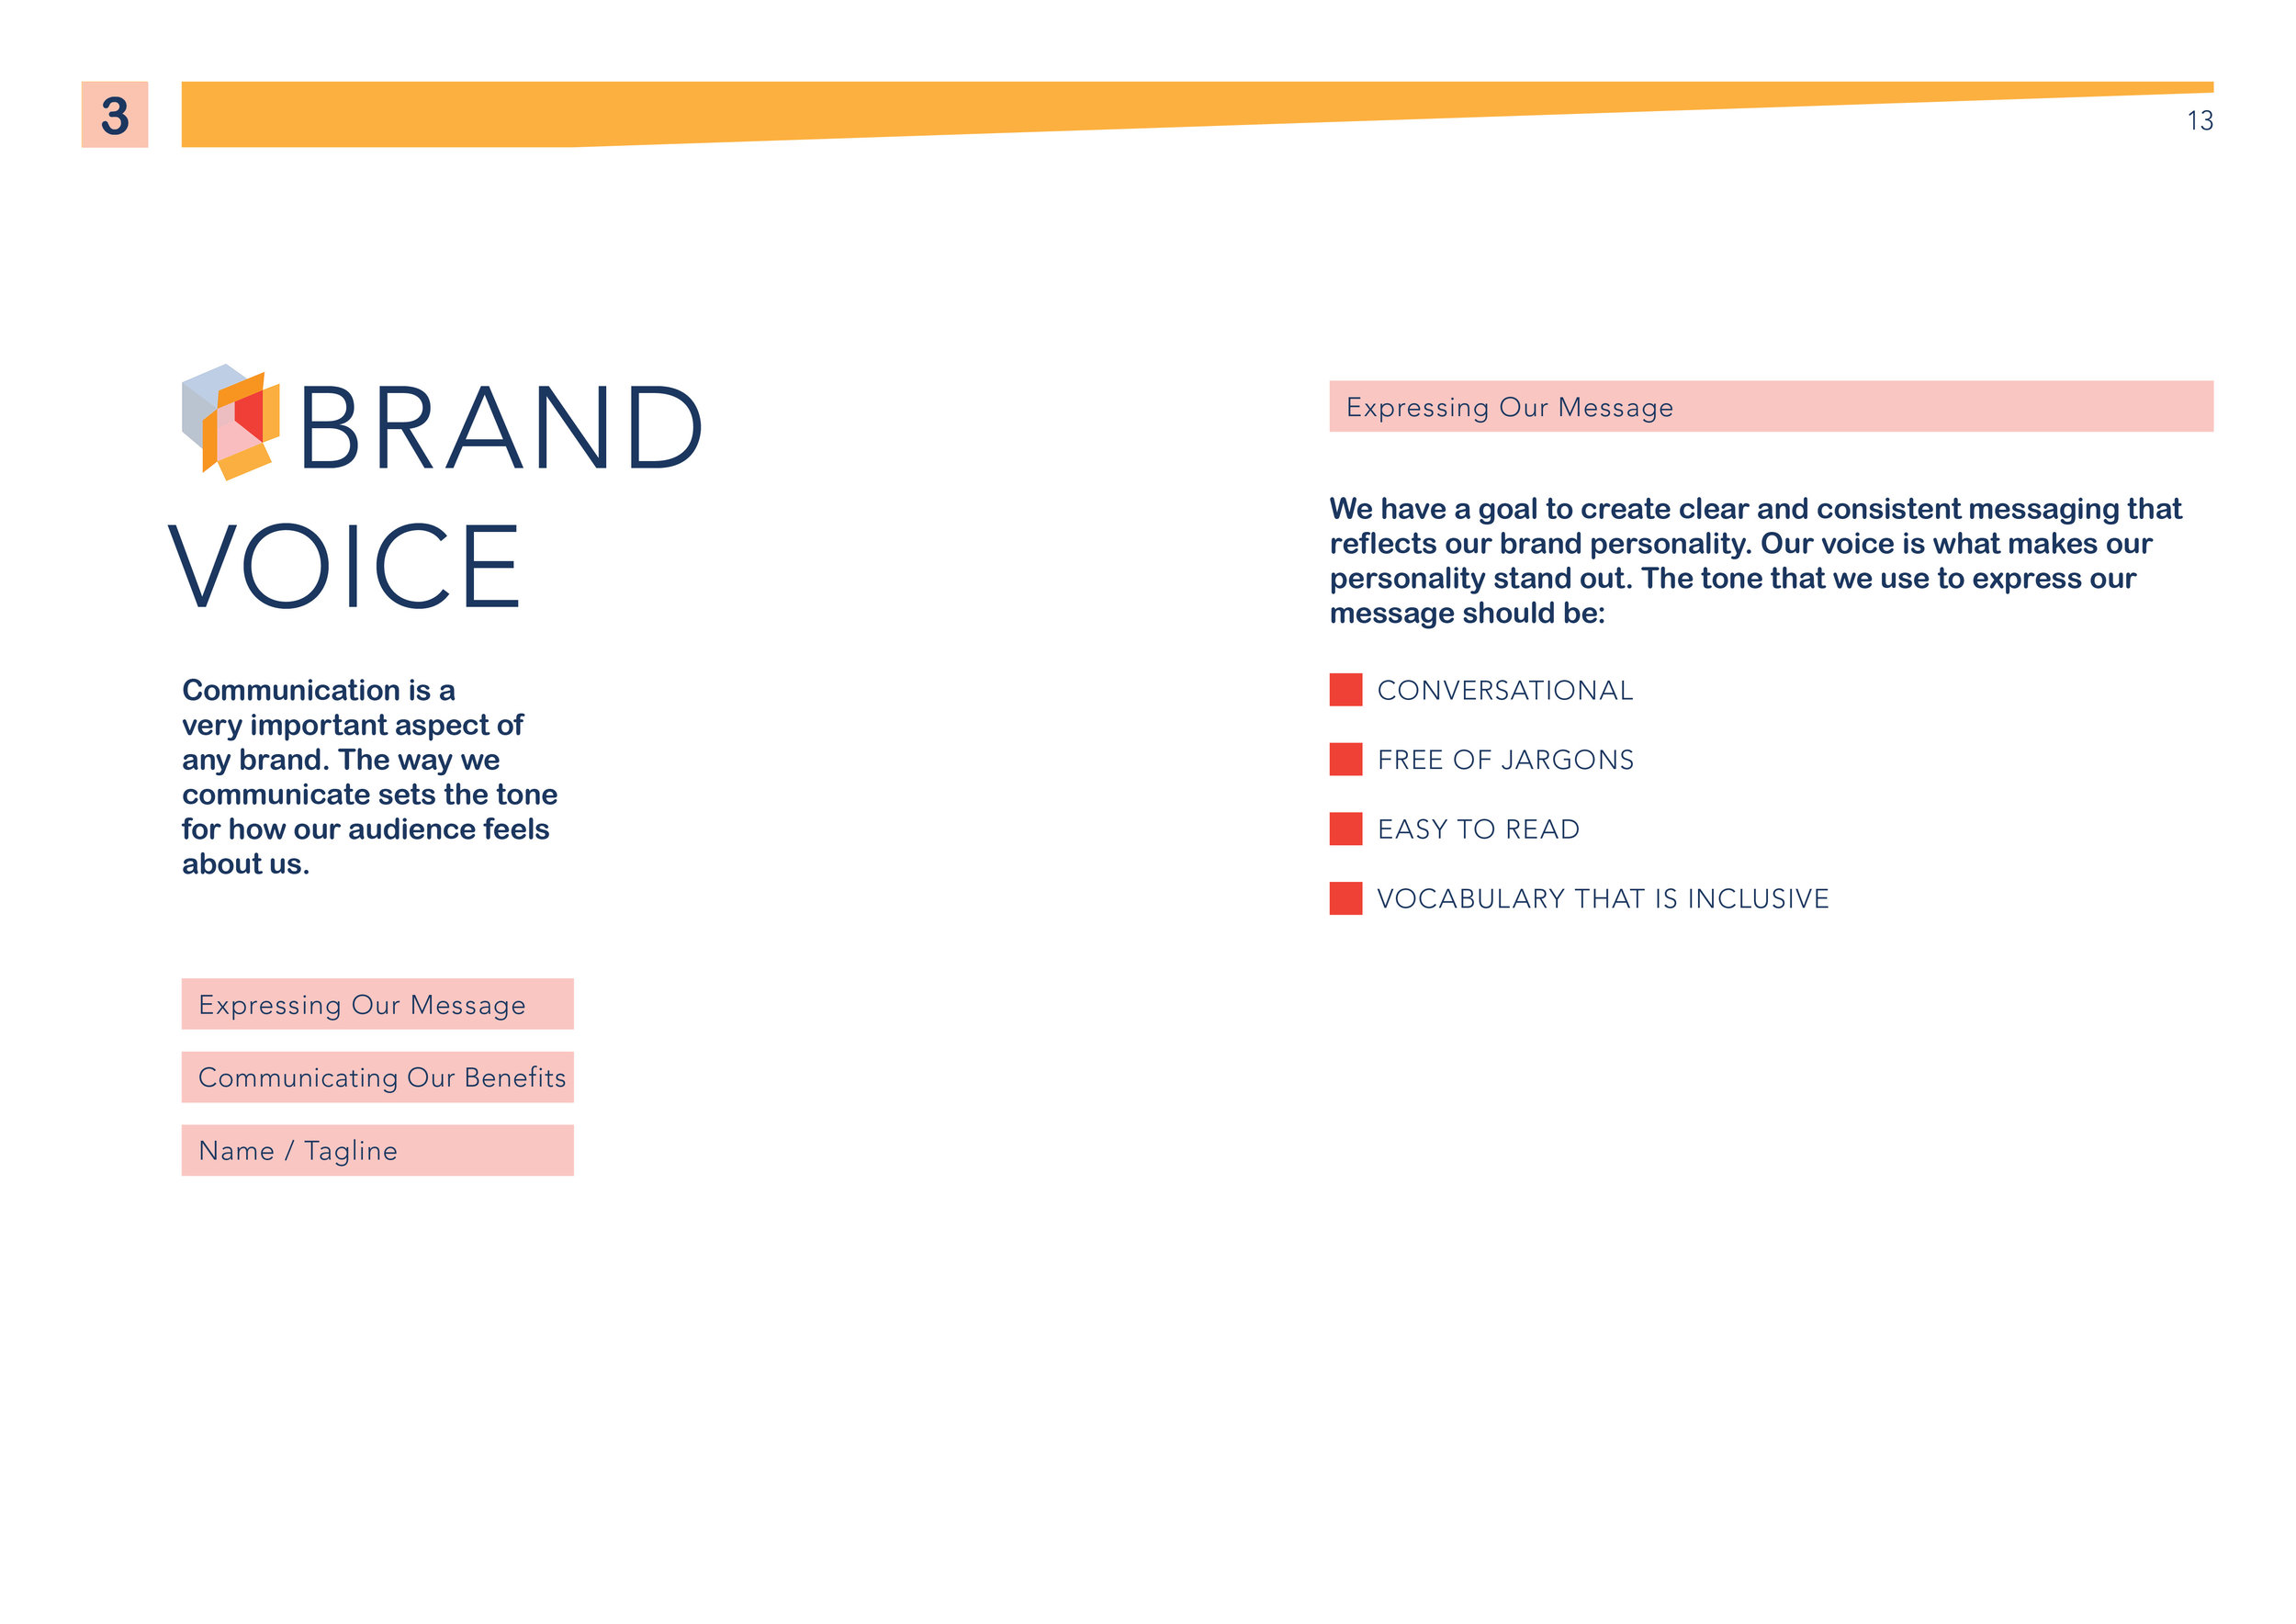 Unbox-it Brand Guidelines7.jpg